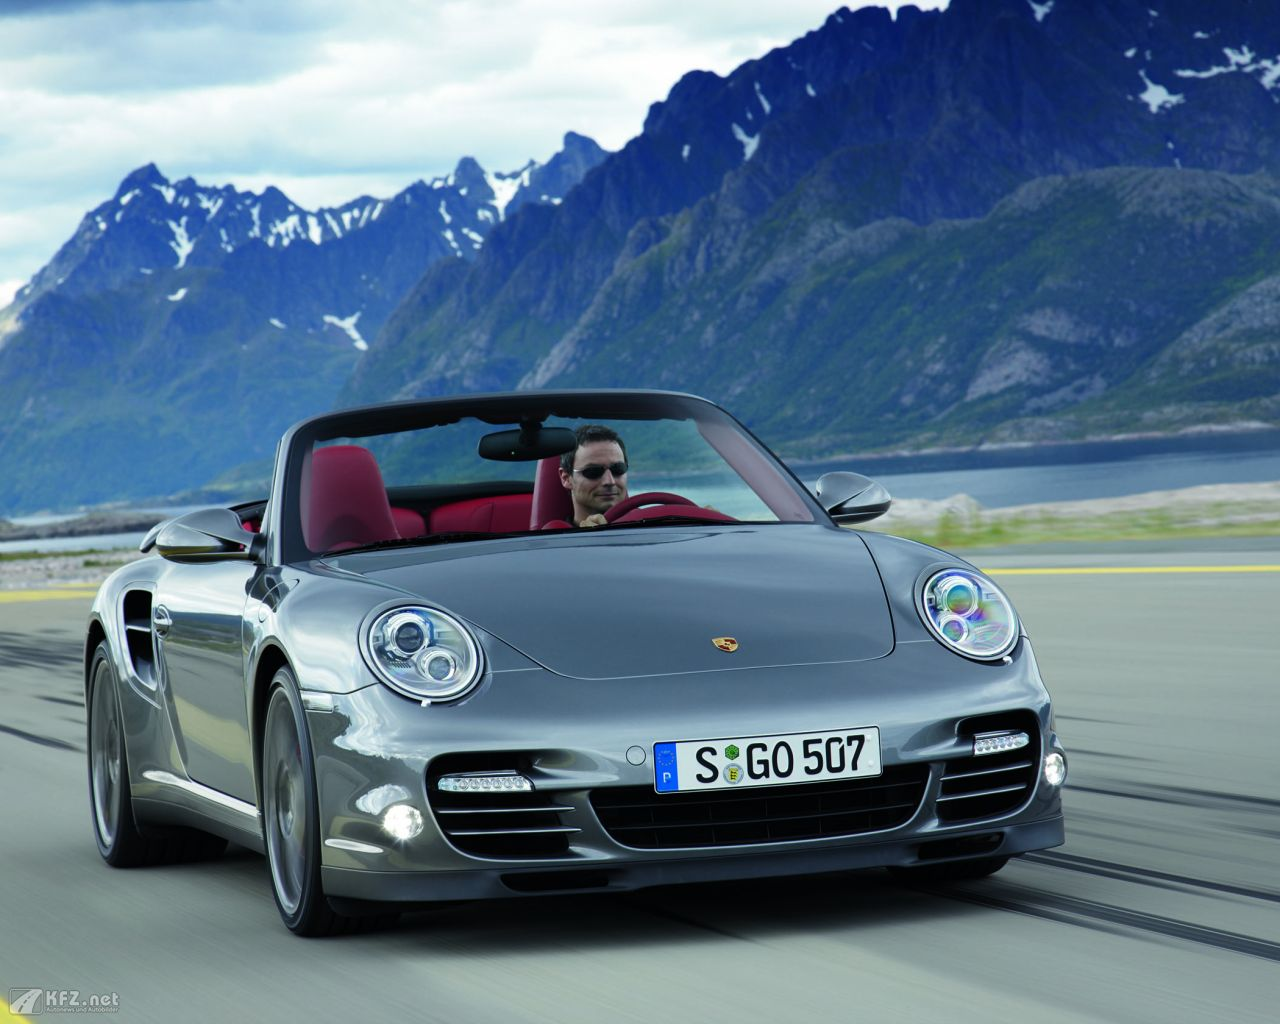 porsche-911-turbo-coupe-1280x1024-17